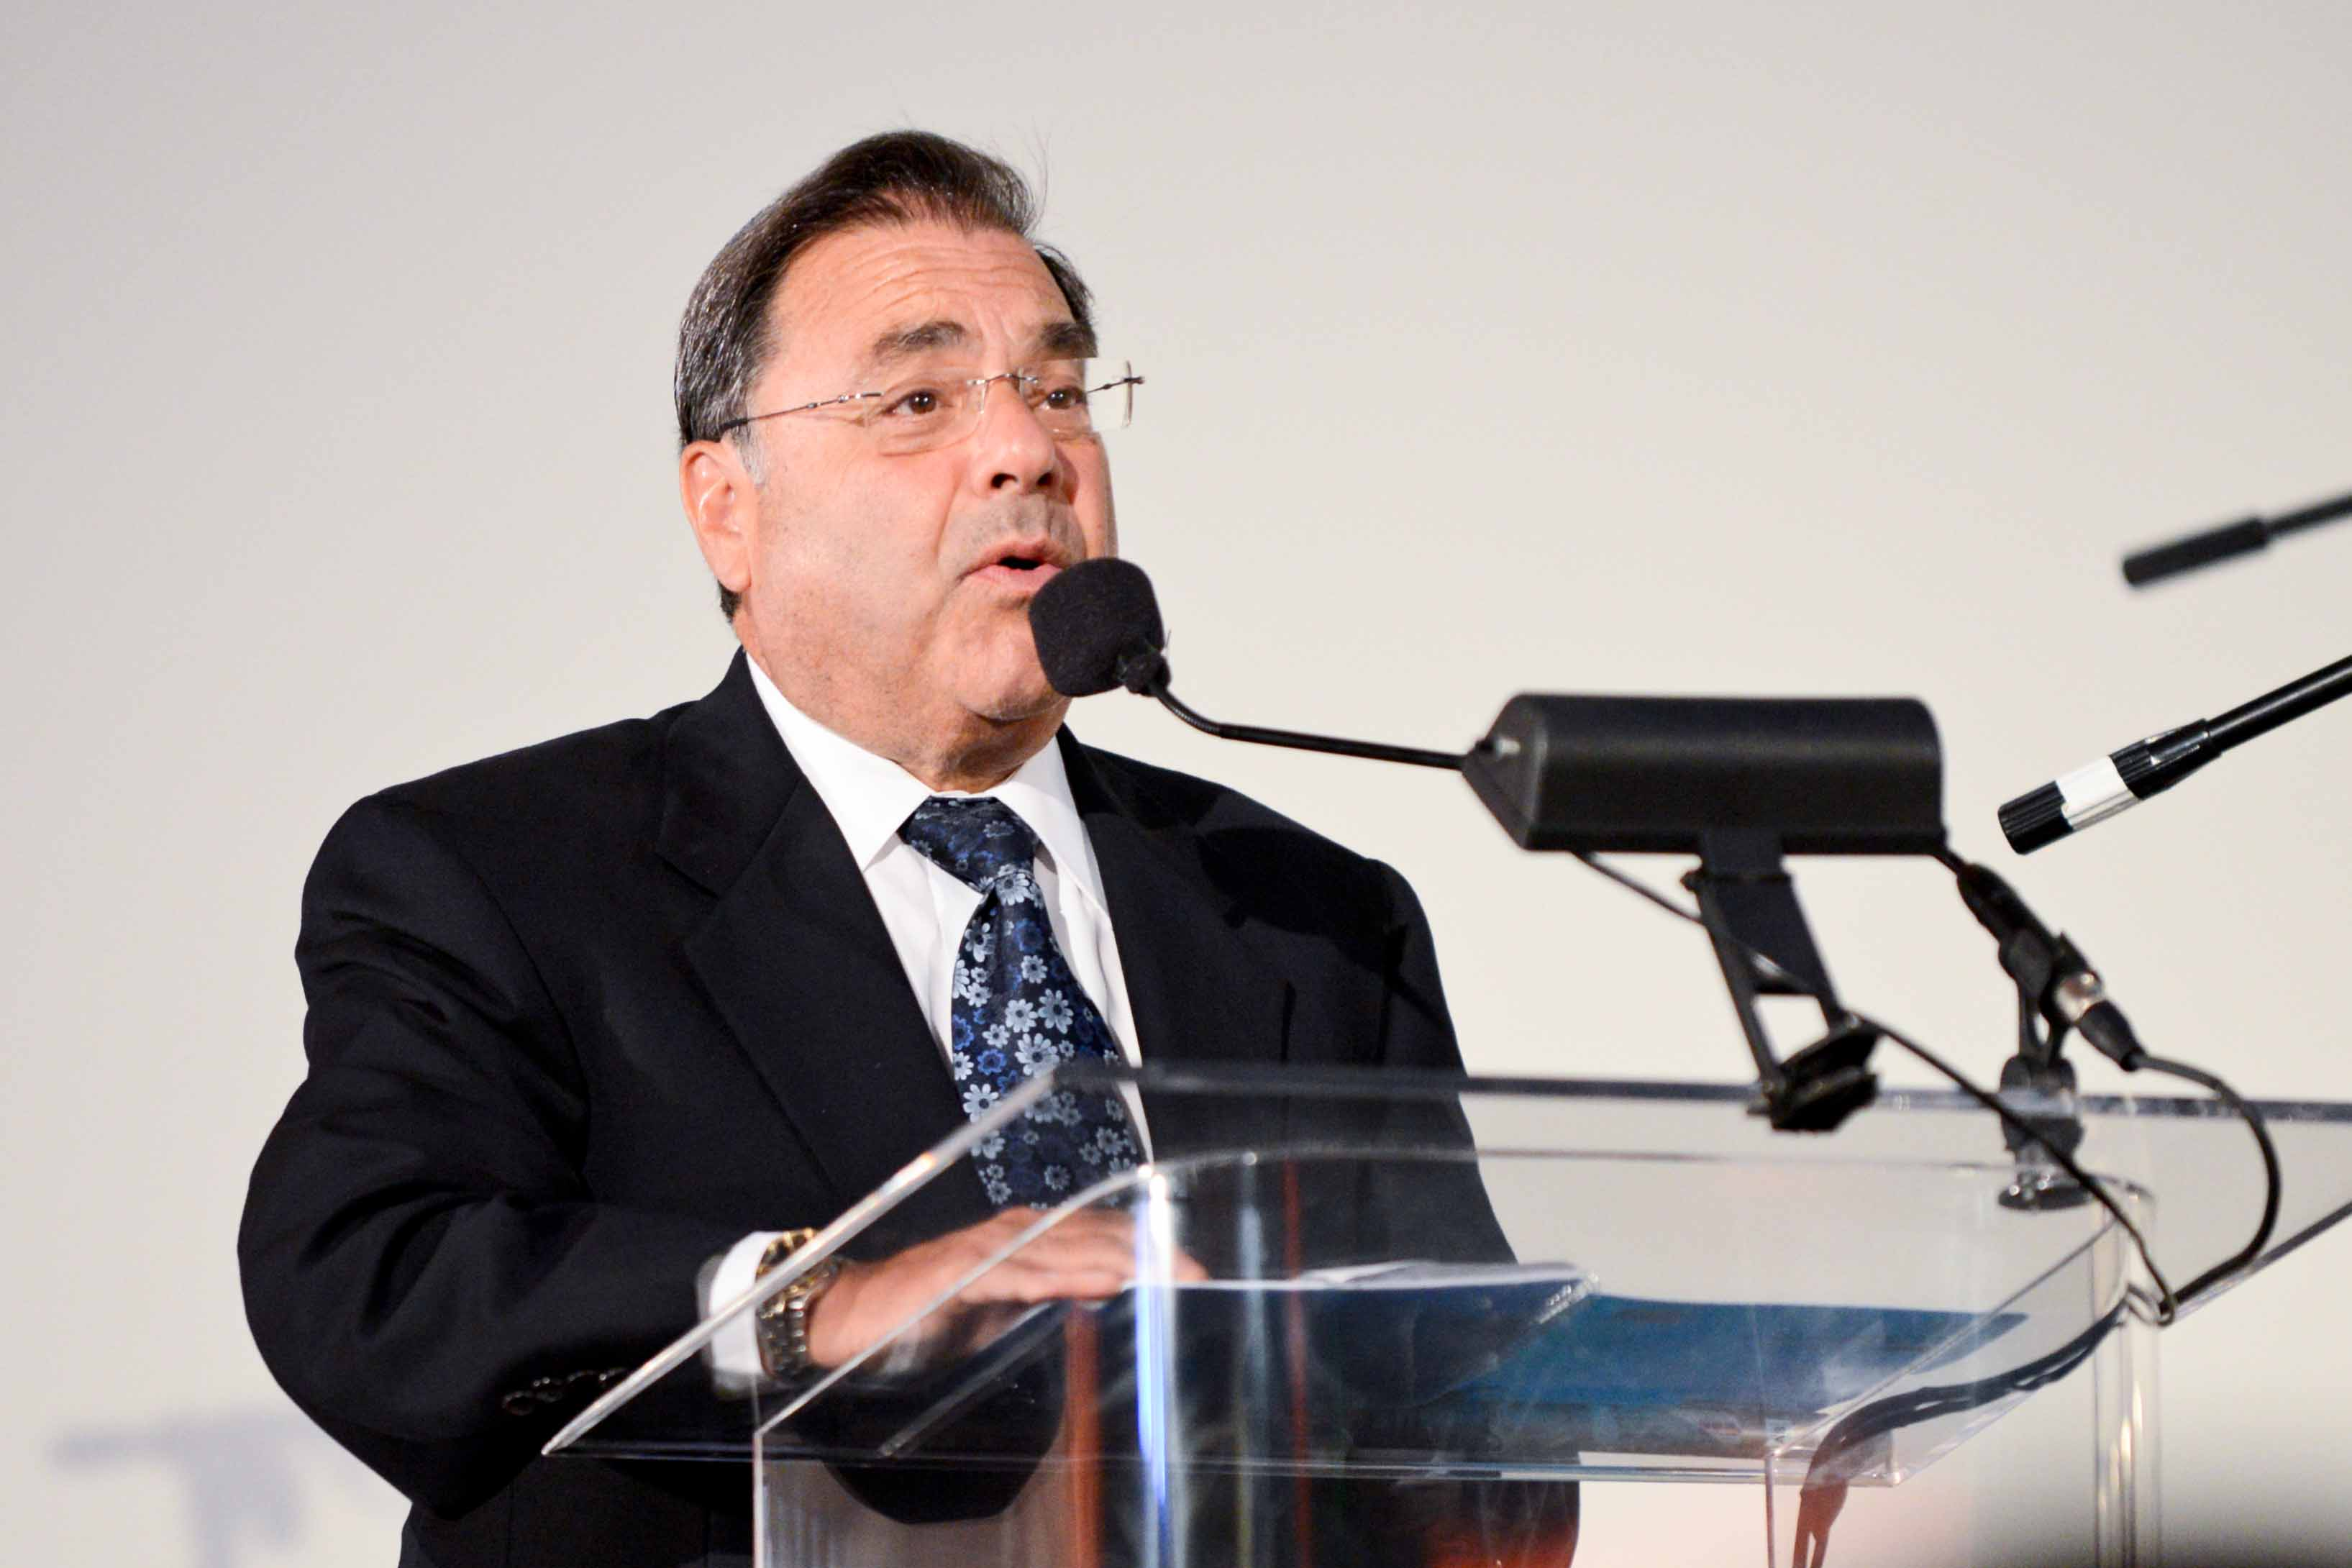 Rabbi Riskin speaking